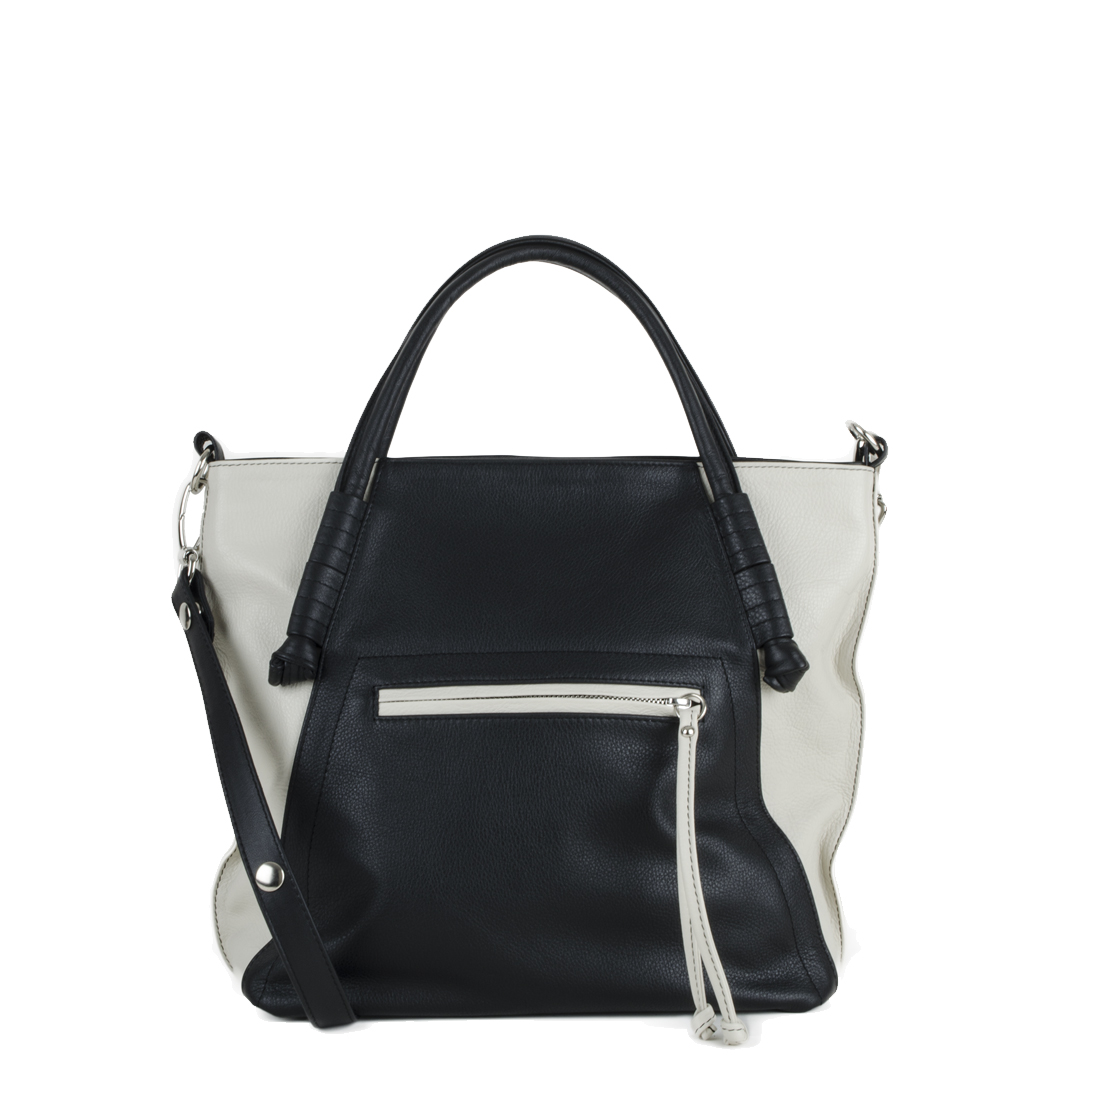 Amy Black Polvere Leather Tote Bag